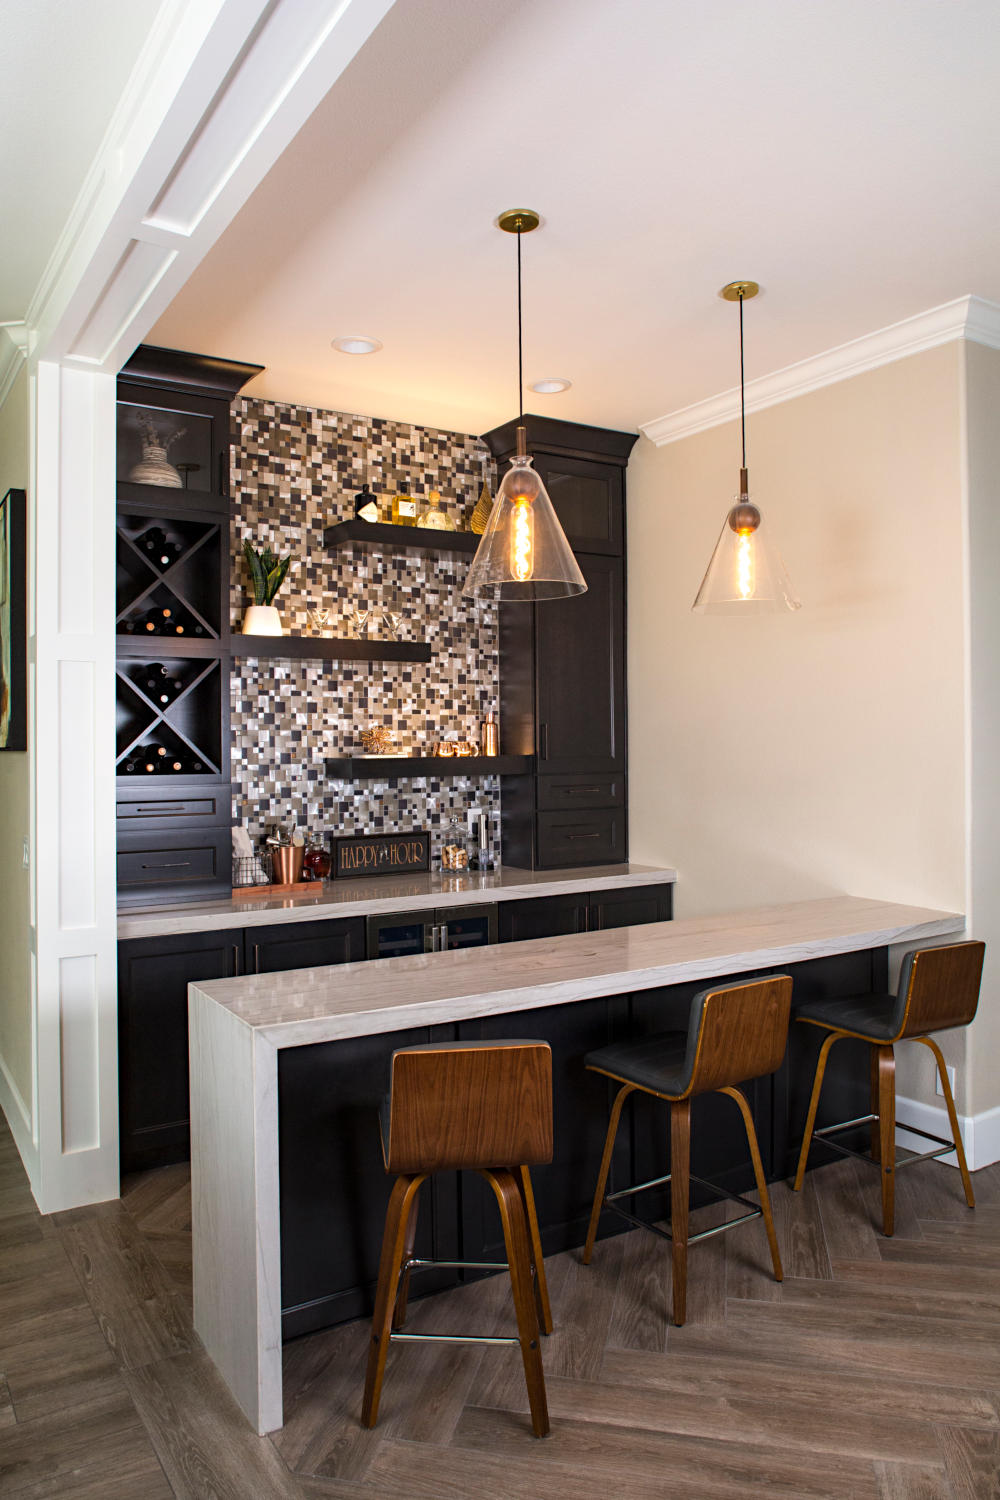 Home bar with barstools, natural stone bar top, pendent lights, dark cabinets.